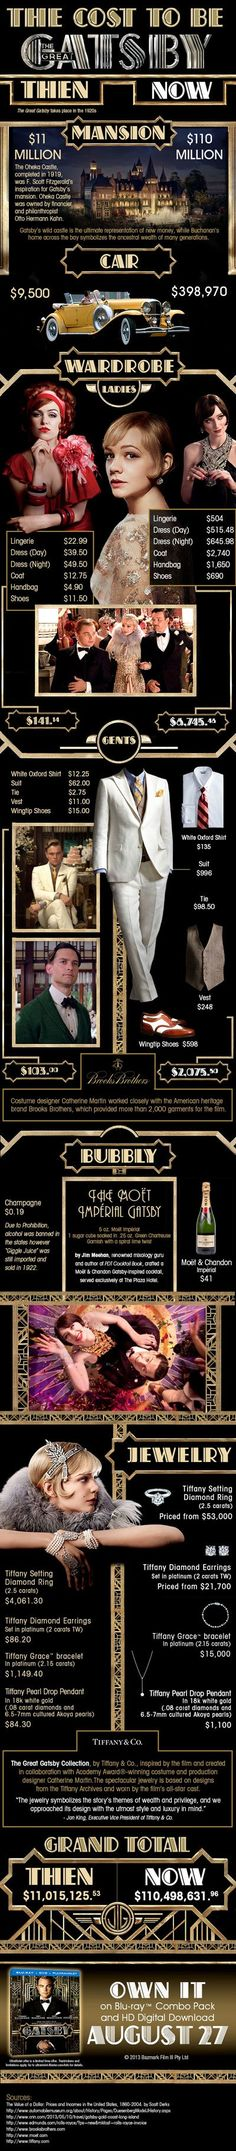 Interesting to teach with the Gatsby. expect maybe Daisy's lingerie. Exclusive: From Gatsby's Mansion to Daisy's Lingerie, The Great Gatsby's Cost-of-Living in 2013 Dollars Great Gatsby Party, Gatsby Theme, The Great Gatsby Movie, 1920s Party, 1920s Wedding, Party Wedding, Wedding Ideas, American Literature, English Literature